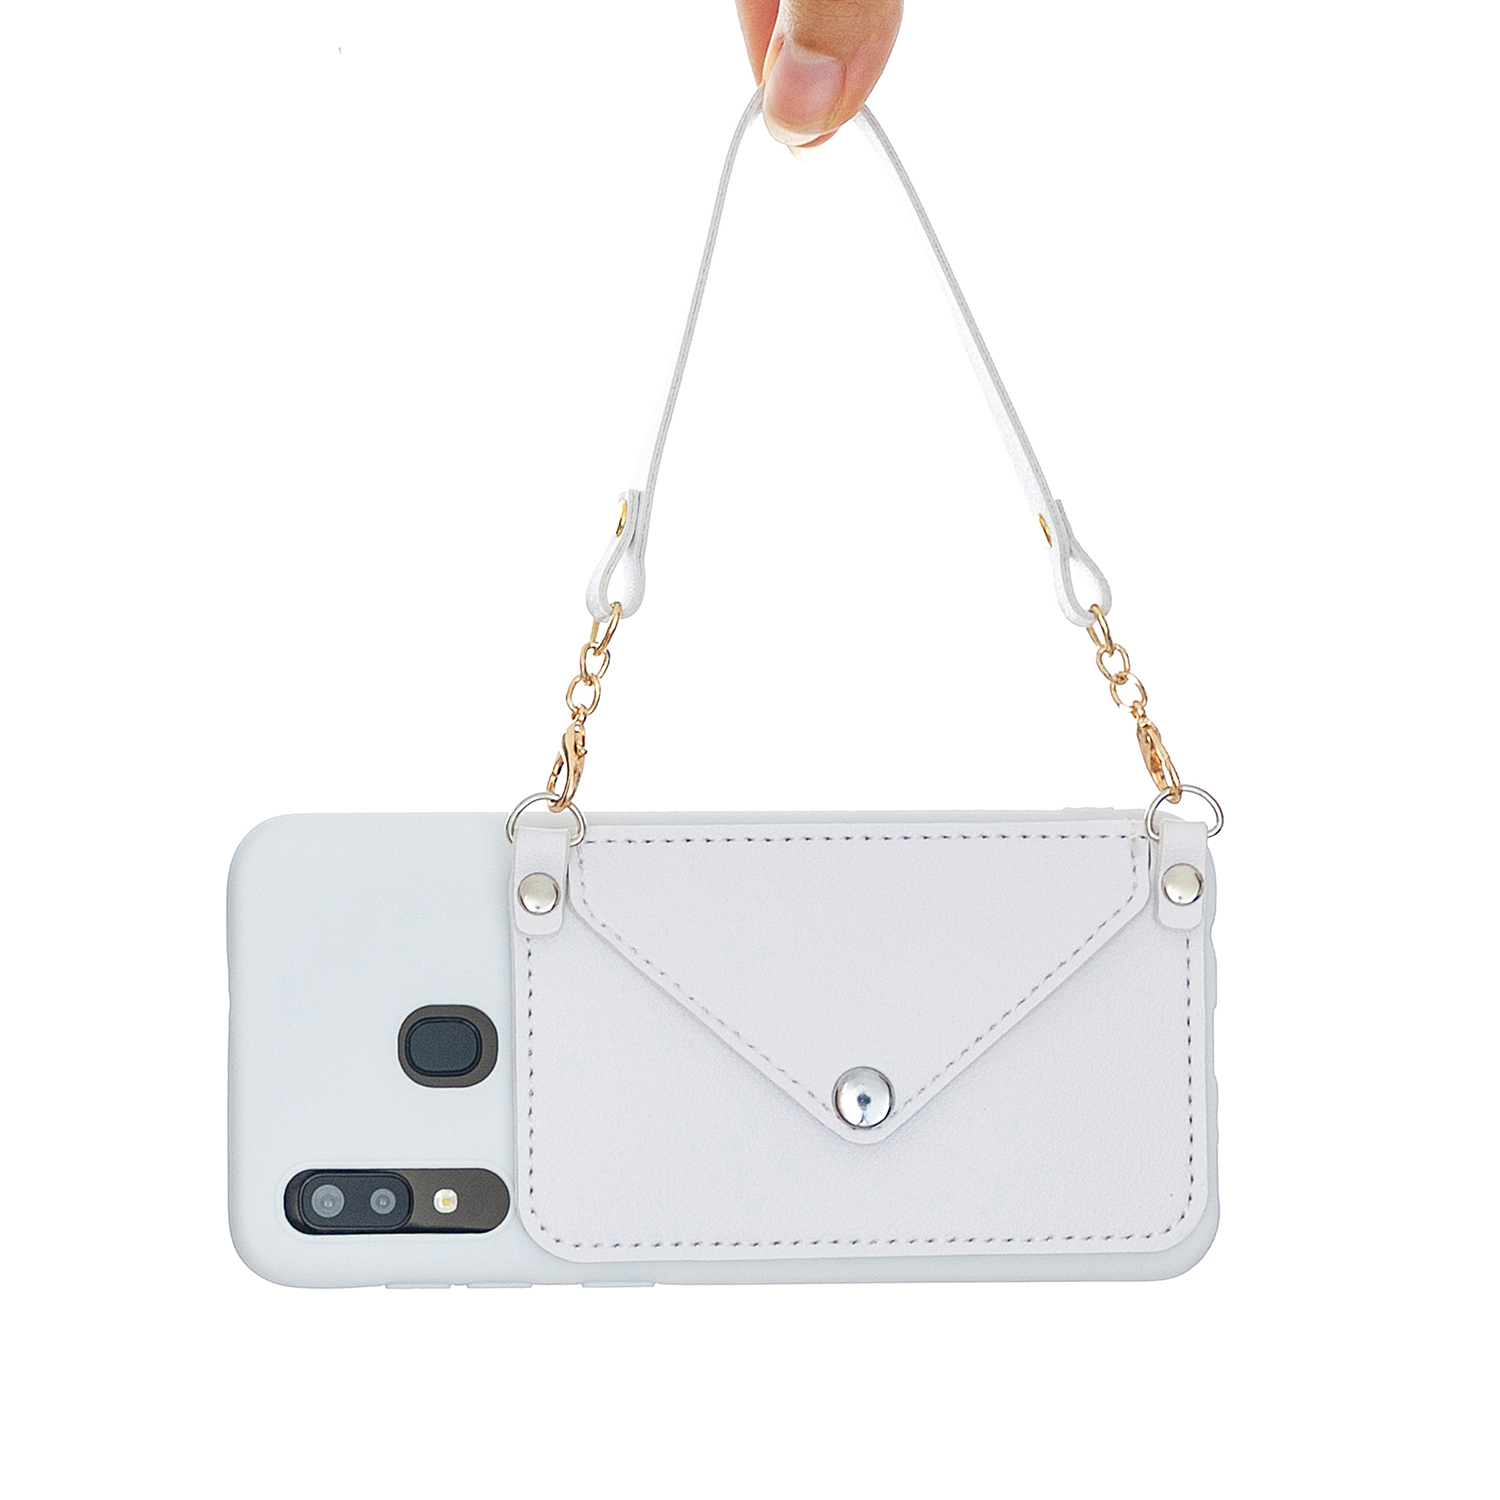 For HUAWEI P20/ P20 Lite/P20 Pro Mobile Phone Cover with Pu Leather Card Holder + Hand Rope + Straddle Rope white